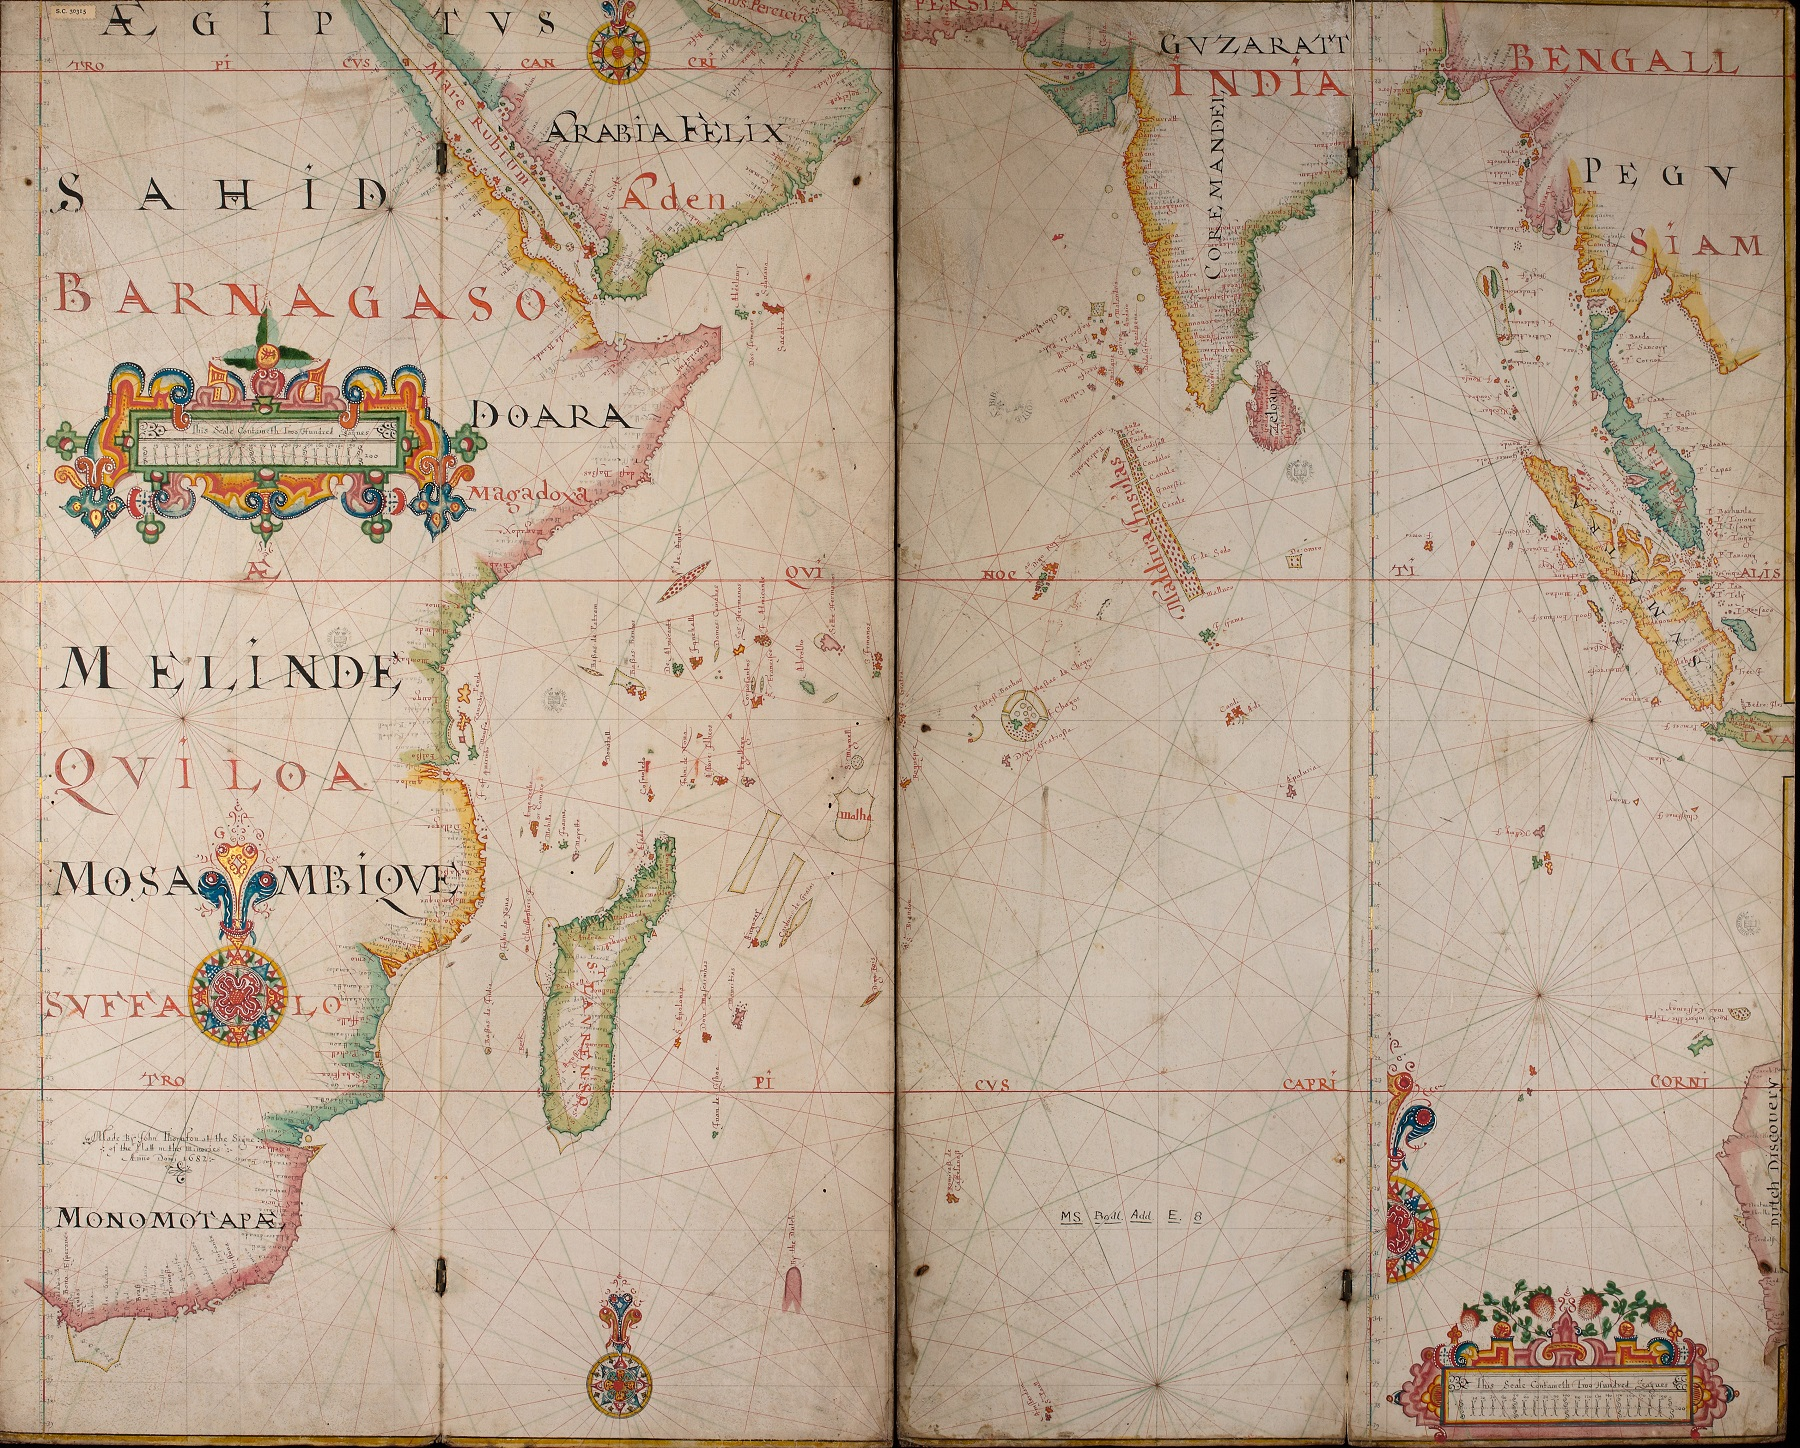 From the thames to the indian ocean bodleian map room blog made in 1682 by john thornton this is a late example of a portolan chart a navigational map hand drawn on vellum by the mid 1600s printed charts were publicscrutiny Choice Image